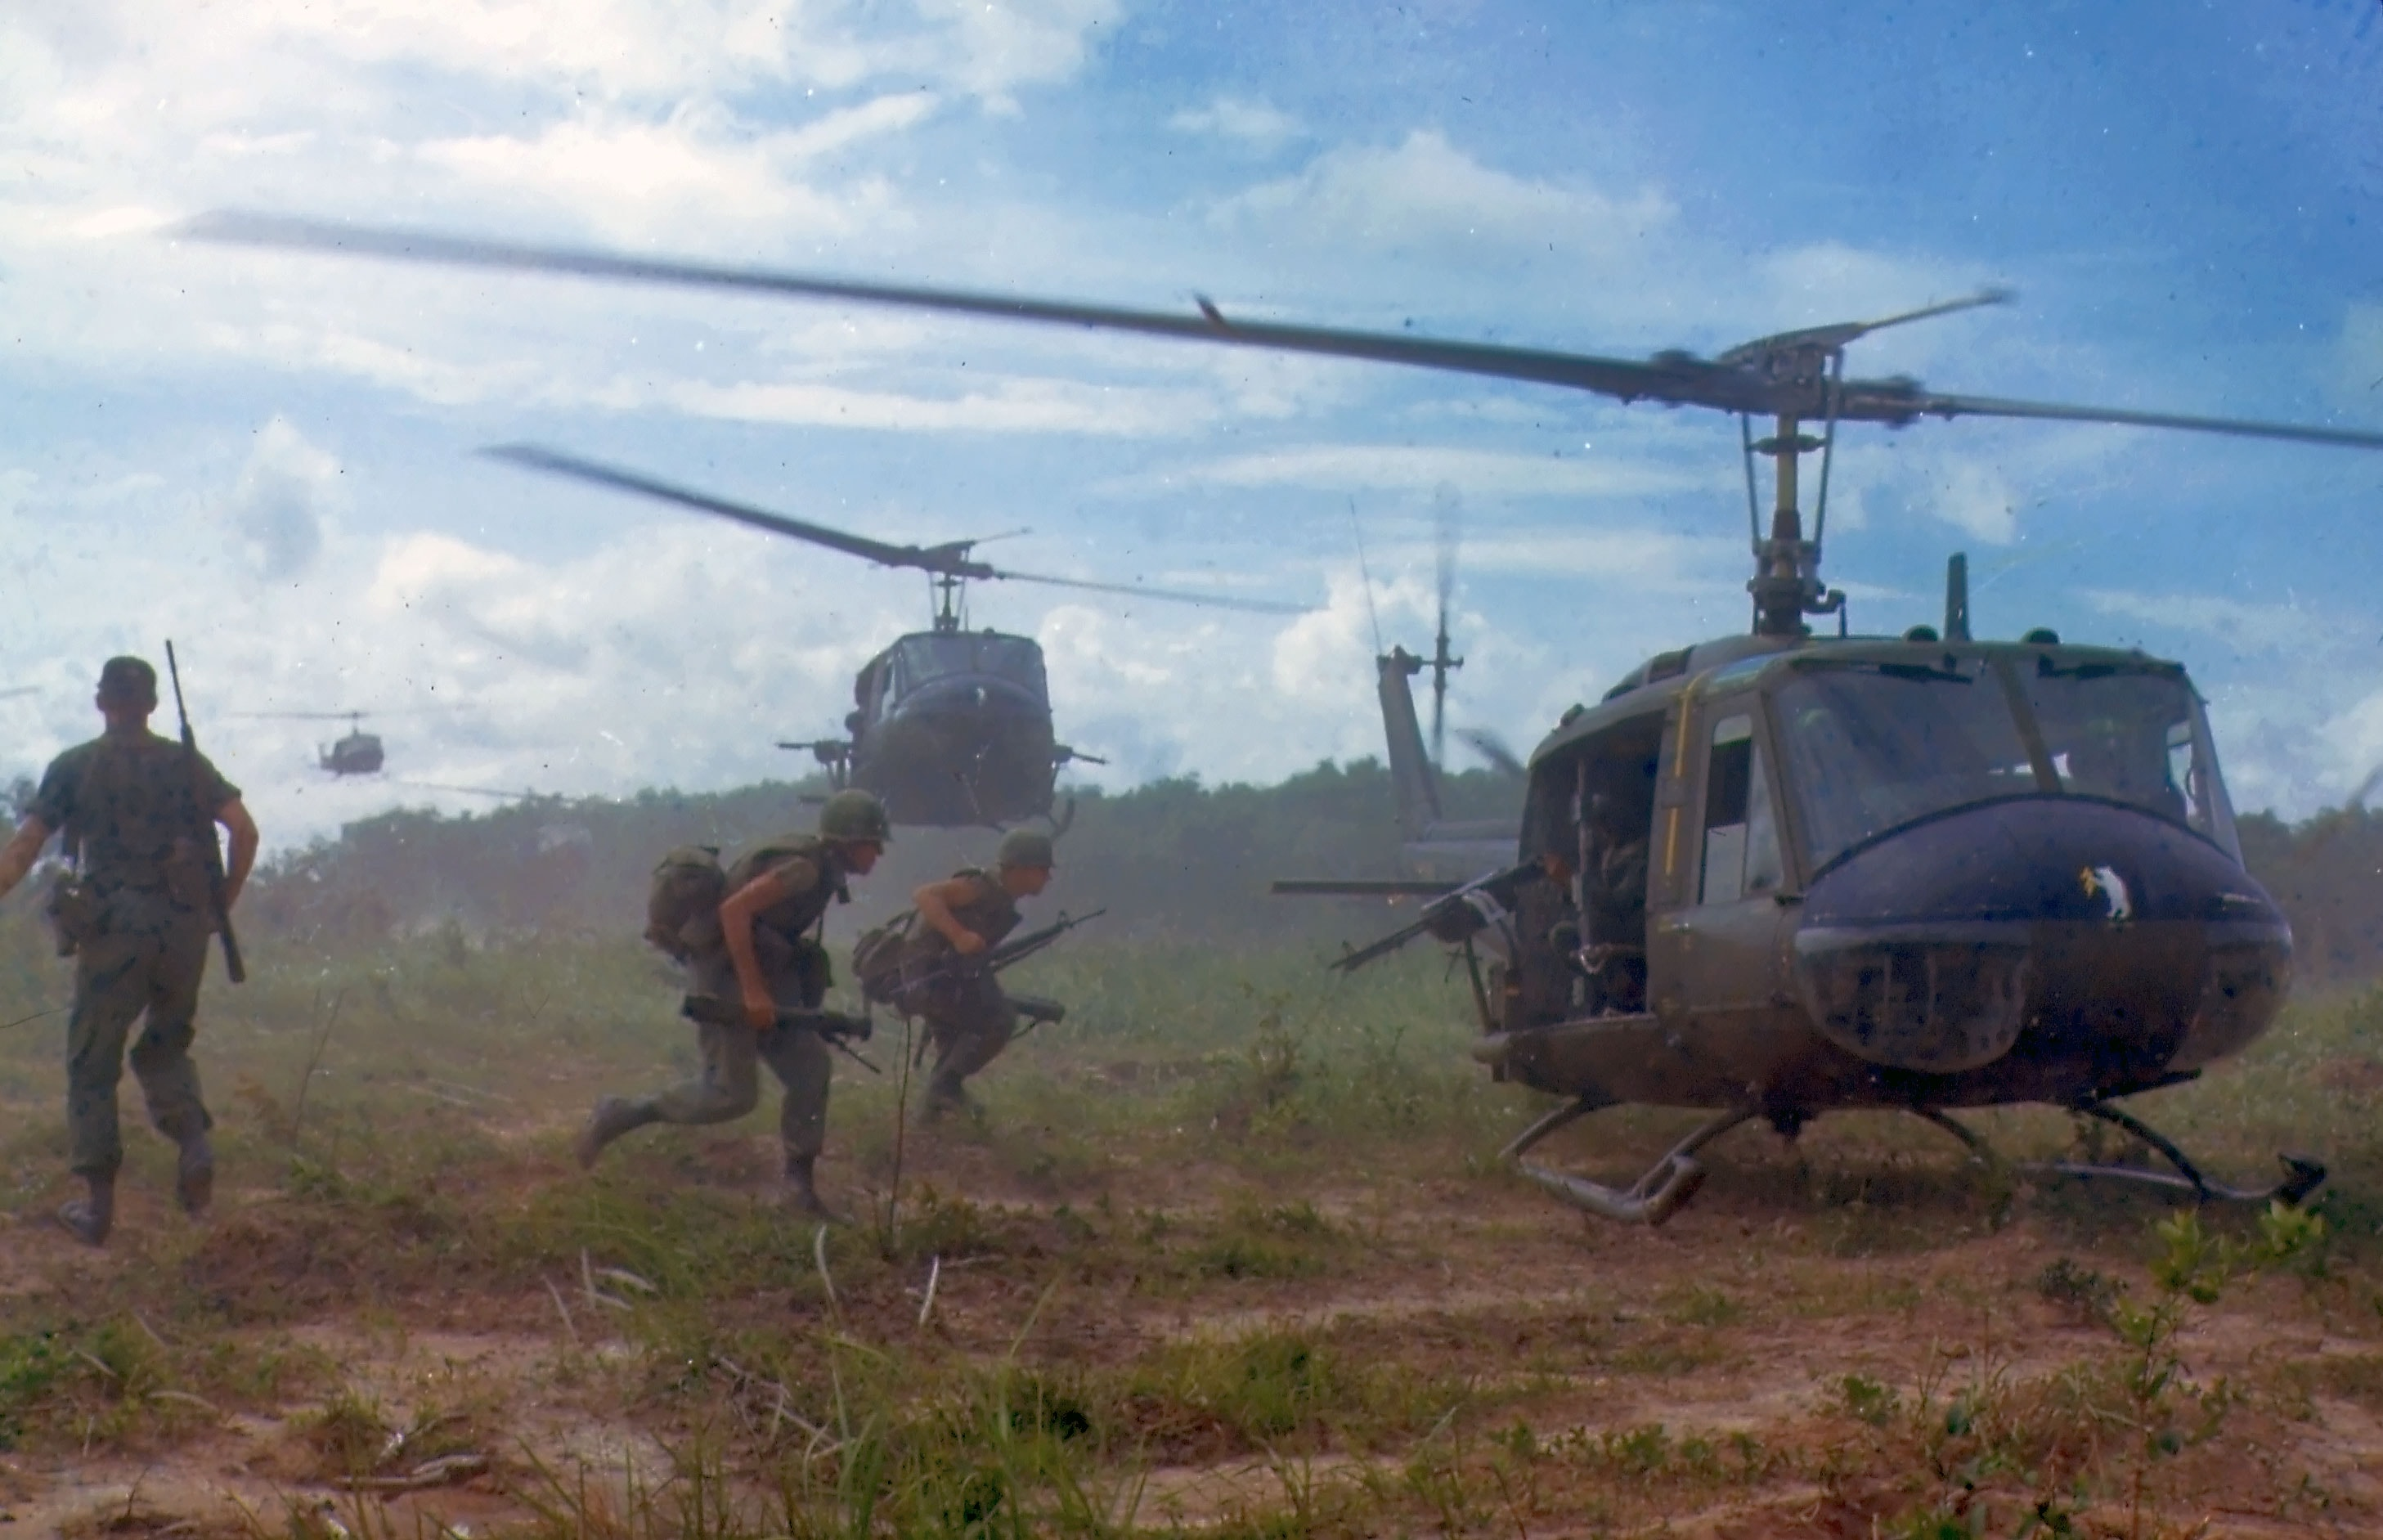 11 Things You Didn't Know About The Vietnam War